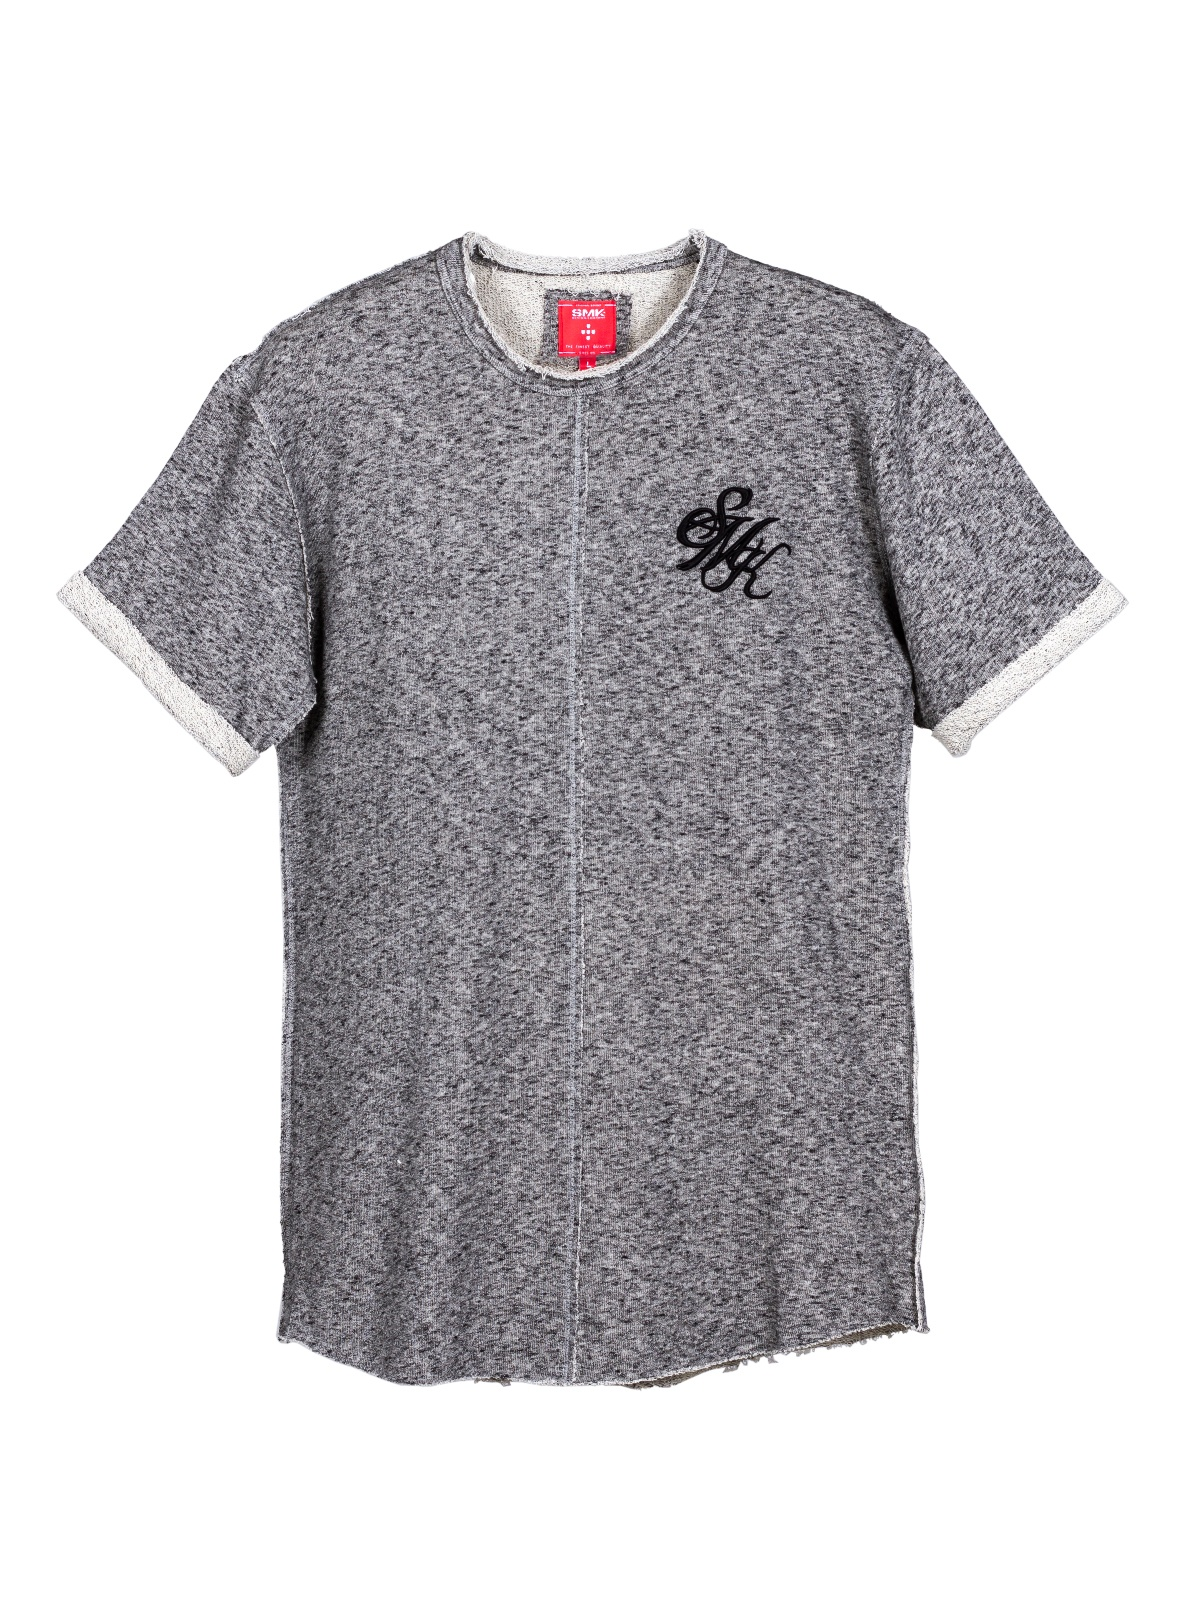 T-SHIRT SMK GRAY BORDAT